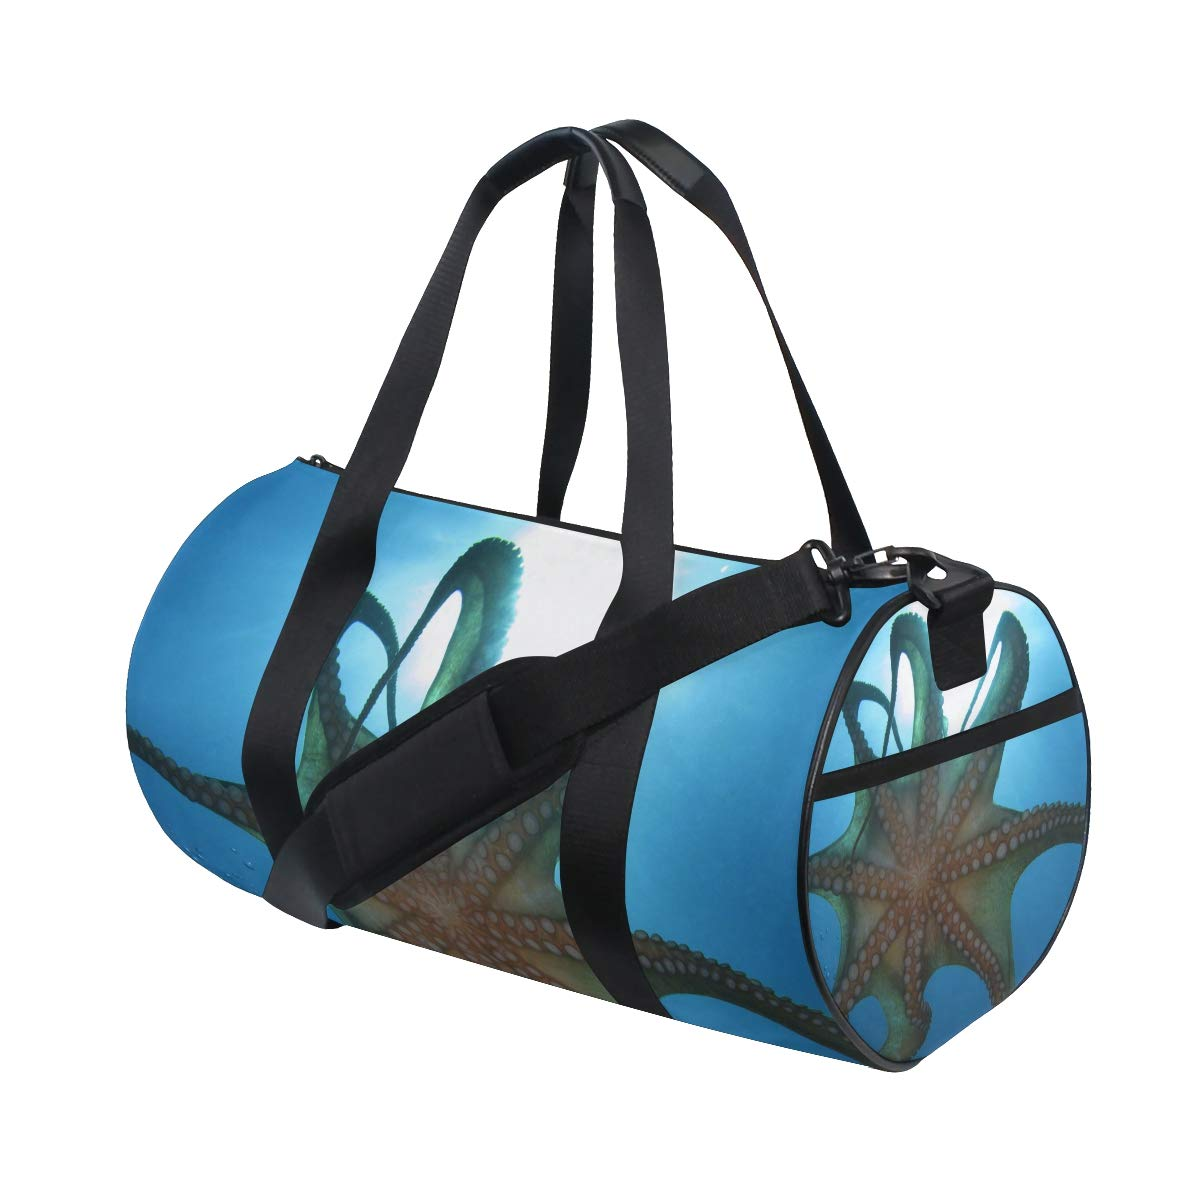 Octopus Yoga Sports Gym Duffle Bags Tote Sling Travel Bag Patterned Canvas with Pocket and Zipper For Men Women Bag